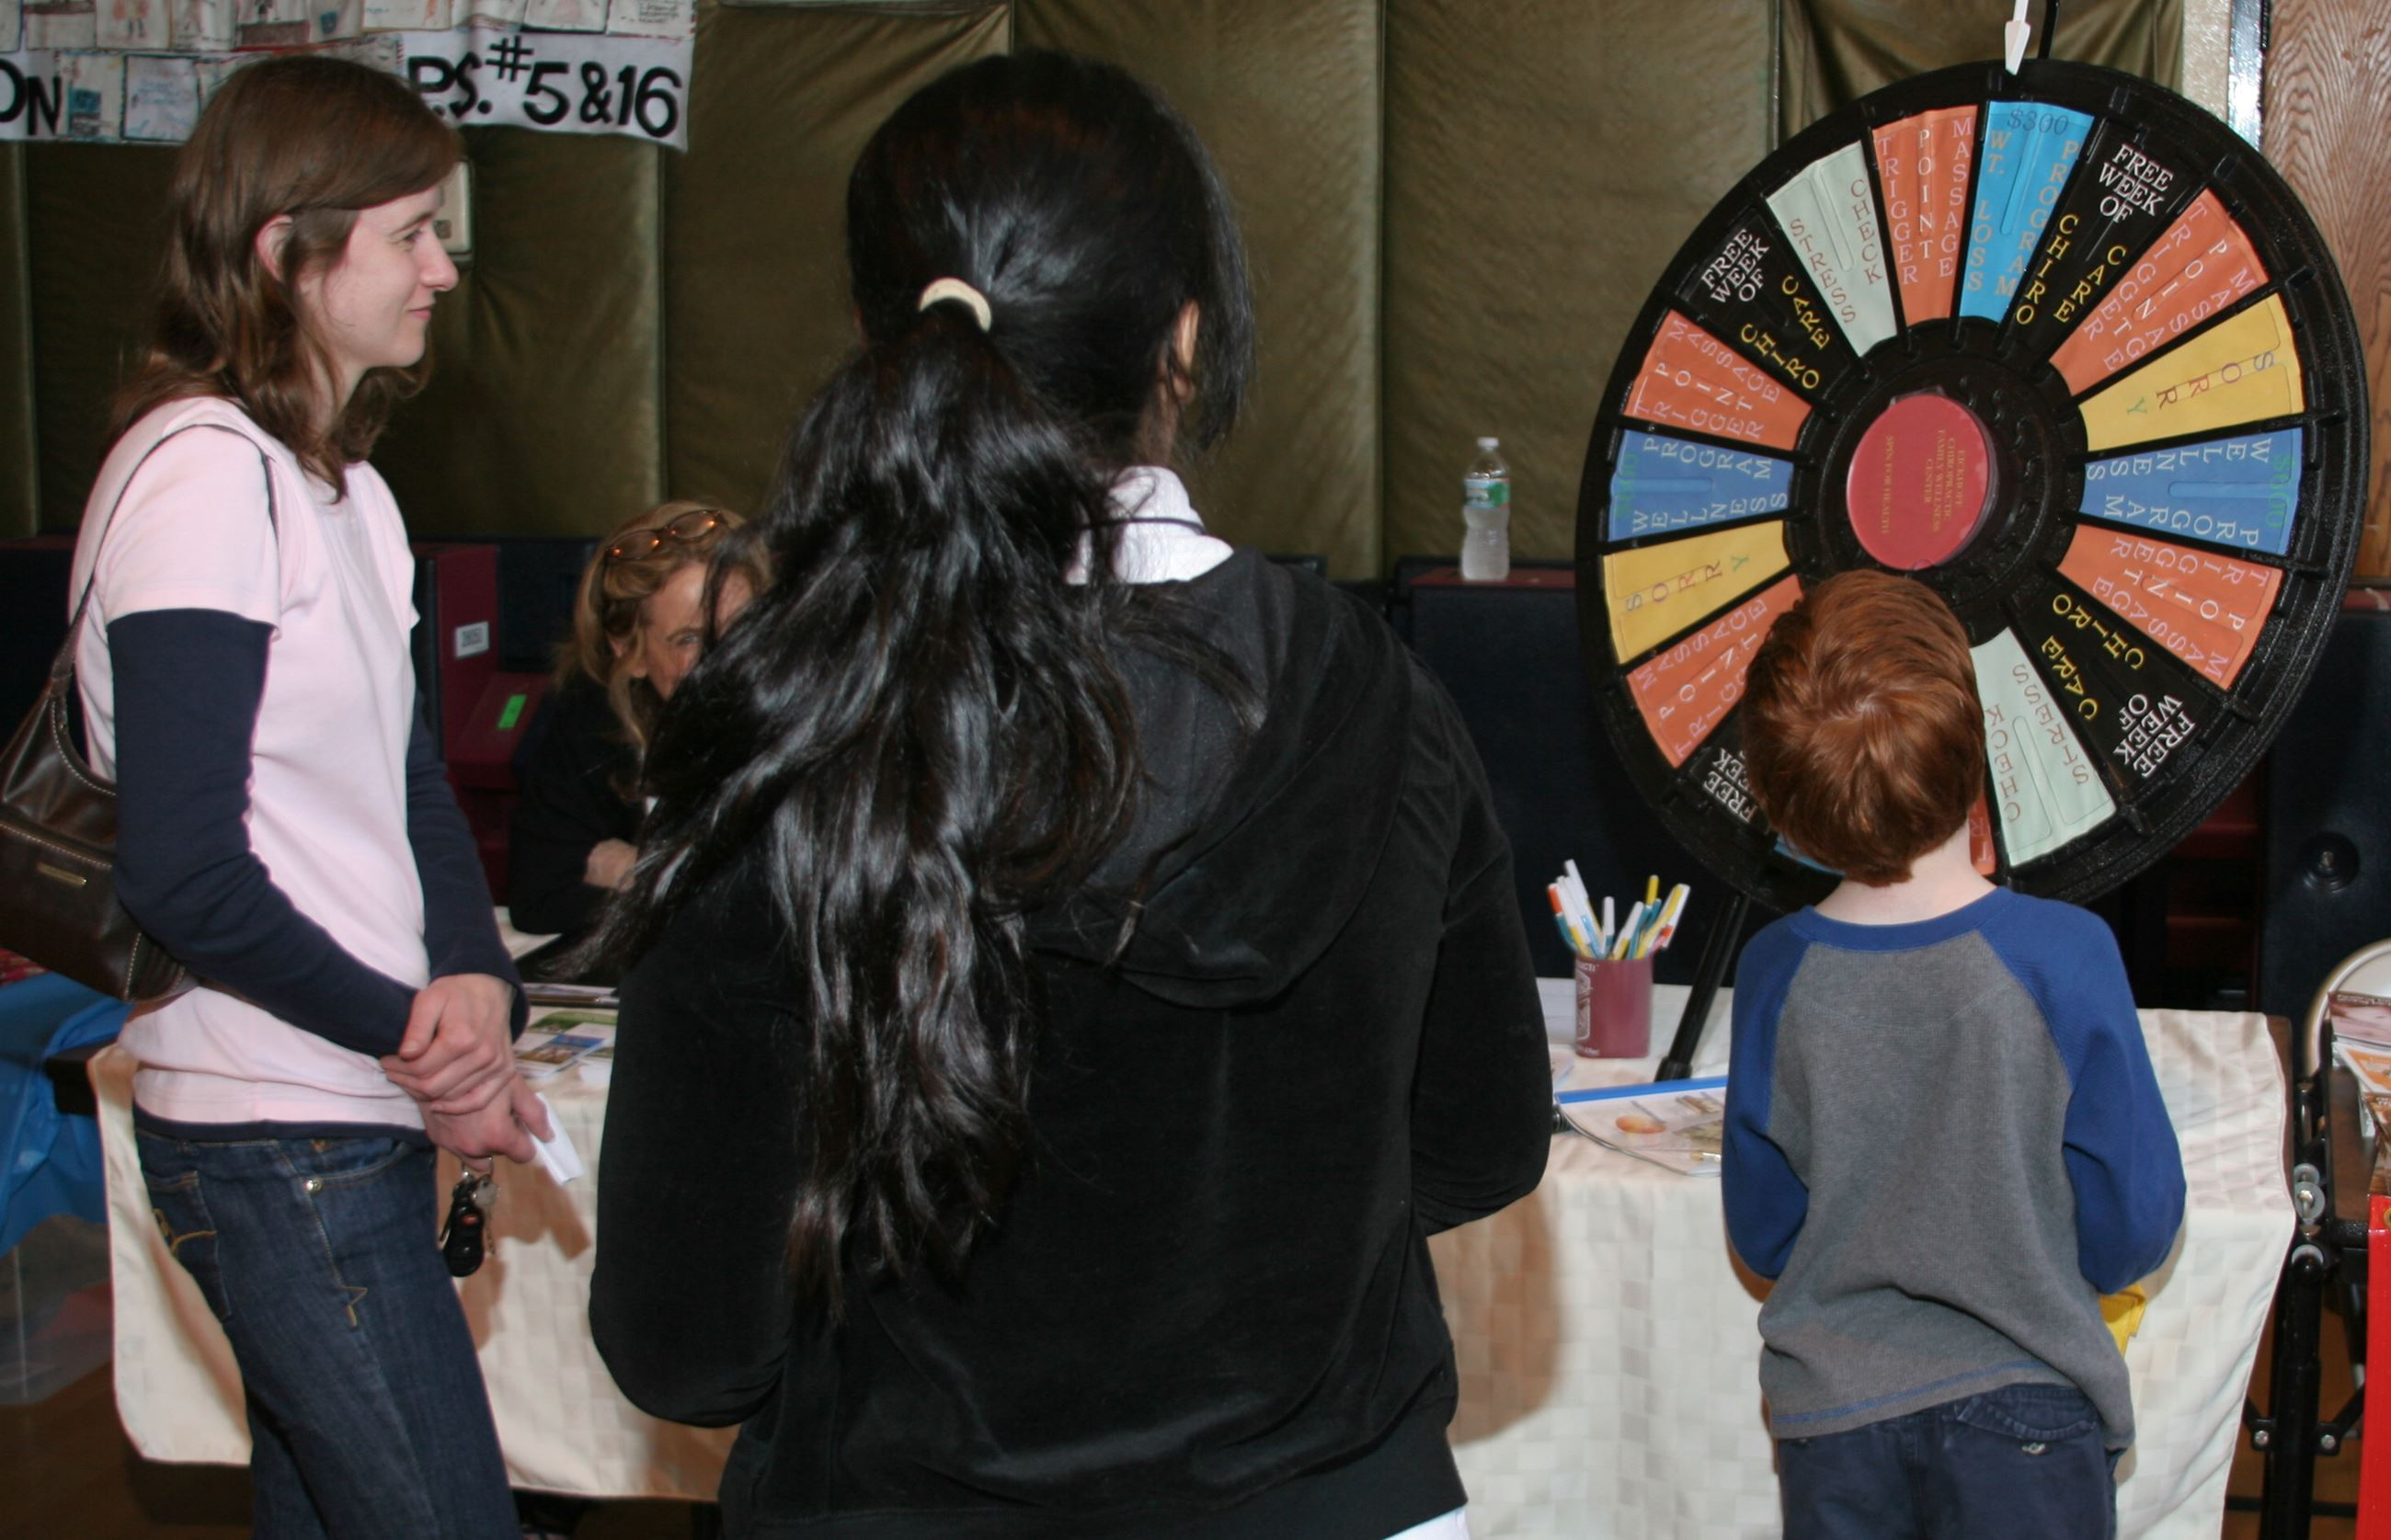 People spin a prize wheel at the Safety Fair